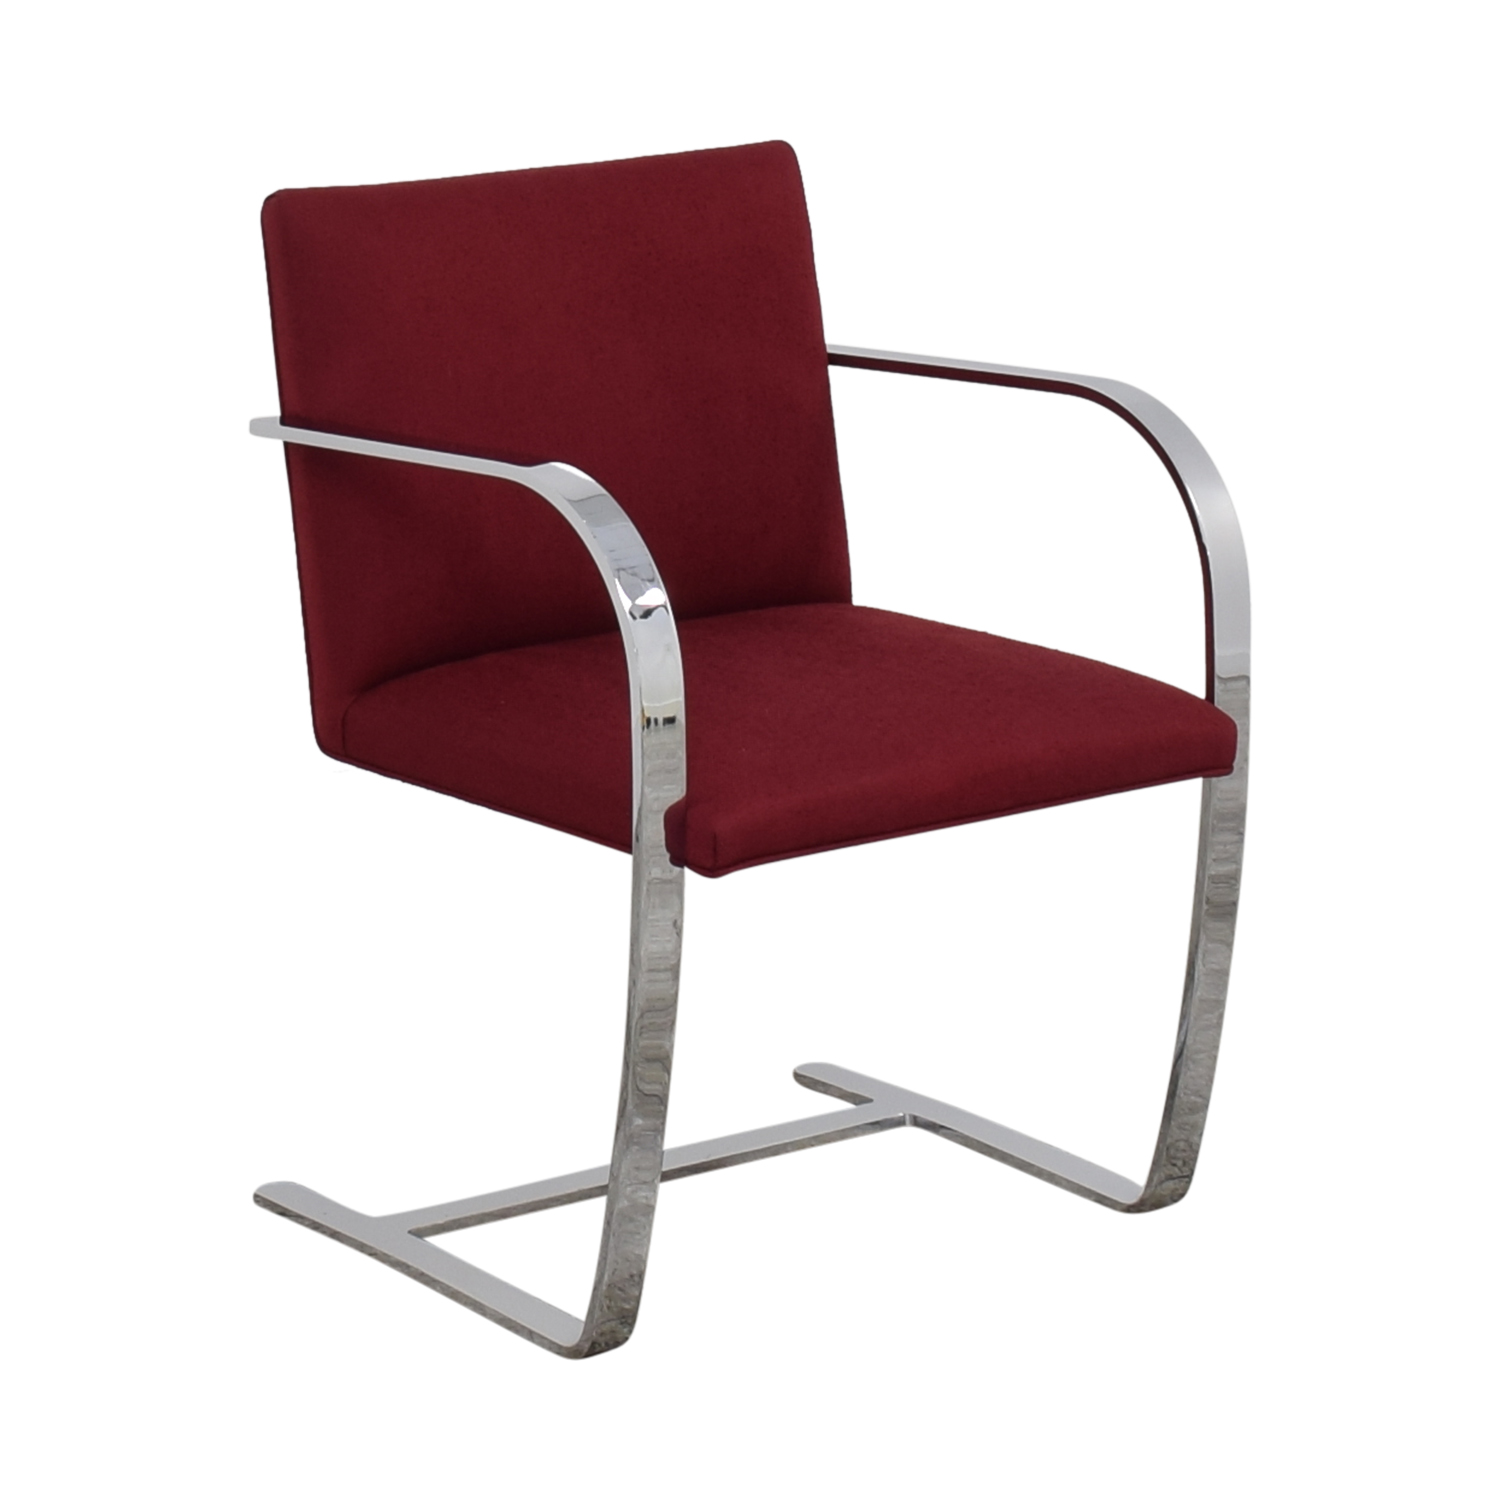 Knoll Knoll BRNO Chair with Flat Bar Frame